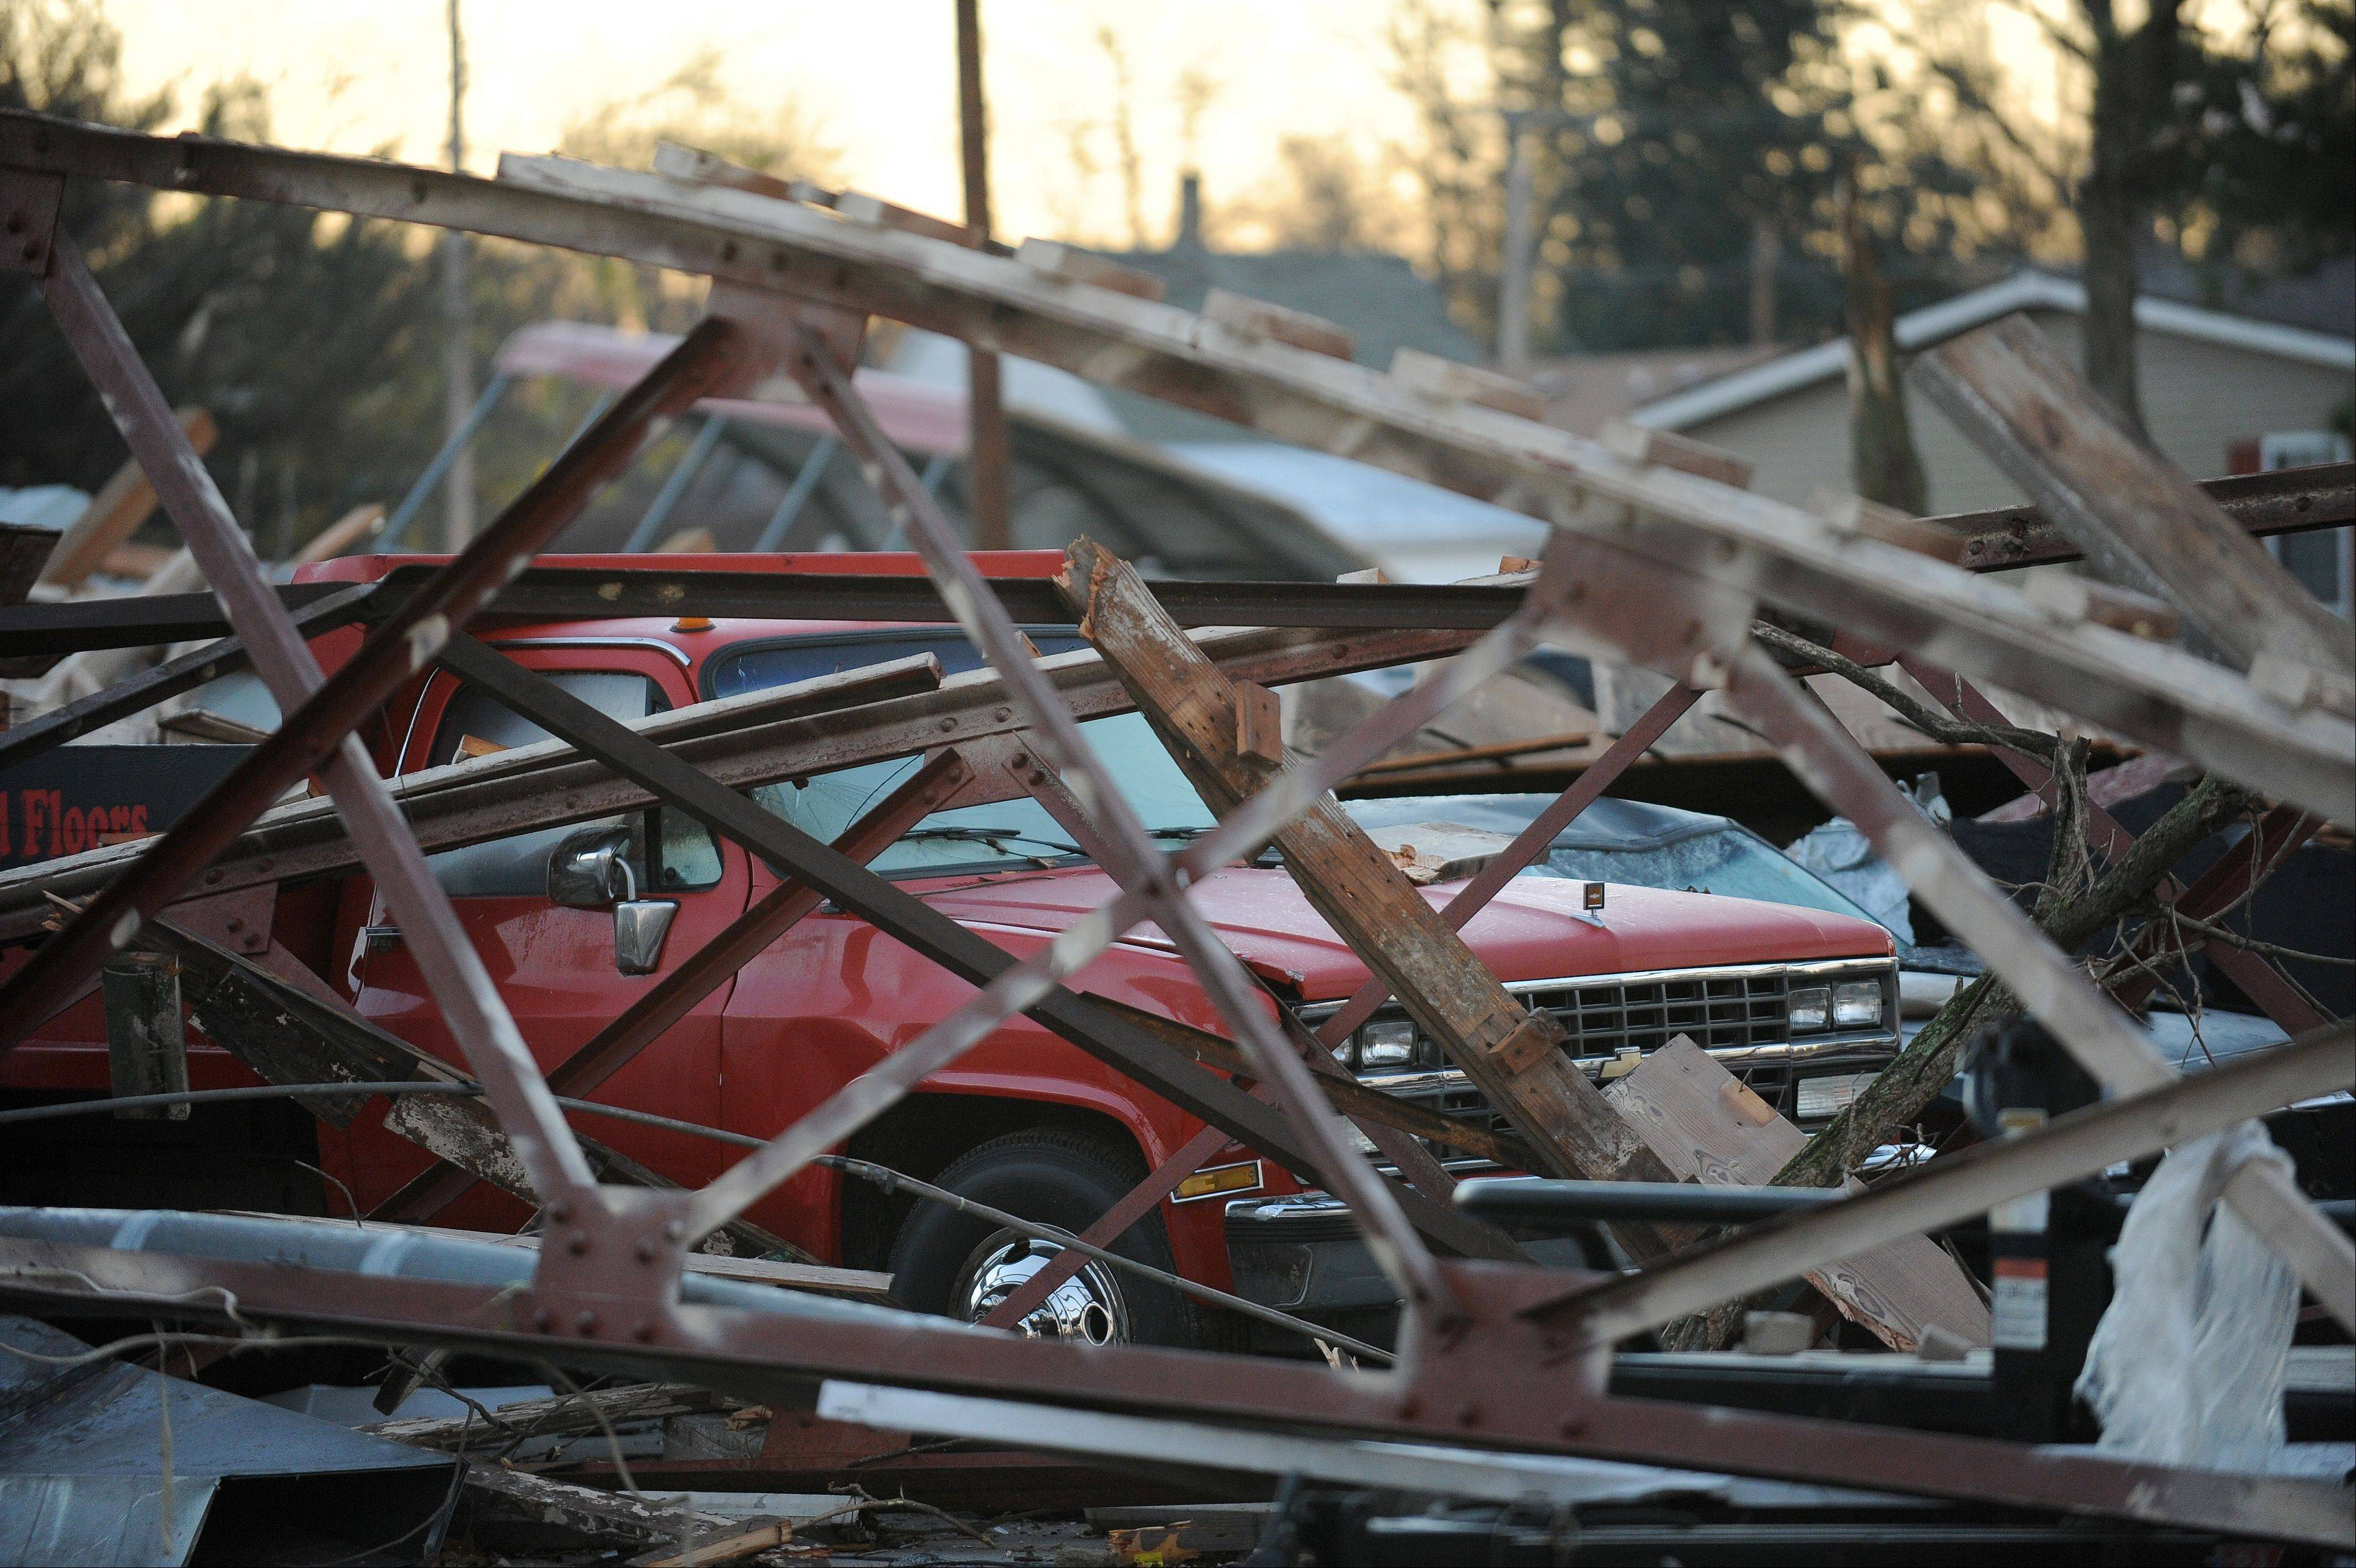 A pick-up truck is buried under storm debris in Brookport, Ill., Monday, Nov. 18, 2013. Dozens of tornadoes and intense thunderstorms swept across the U.S. Midwest on Sunday, unleashing powerful winds that flattened entire neighborhoods, flipped over cars and uprooted trees.